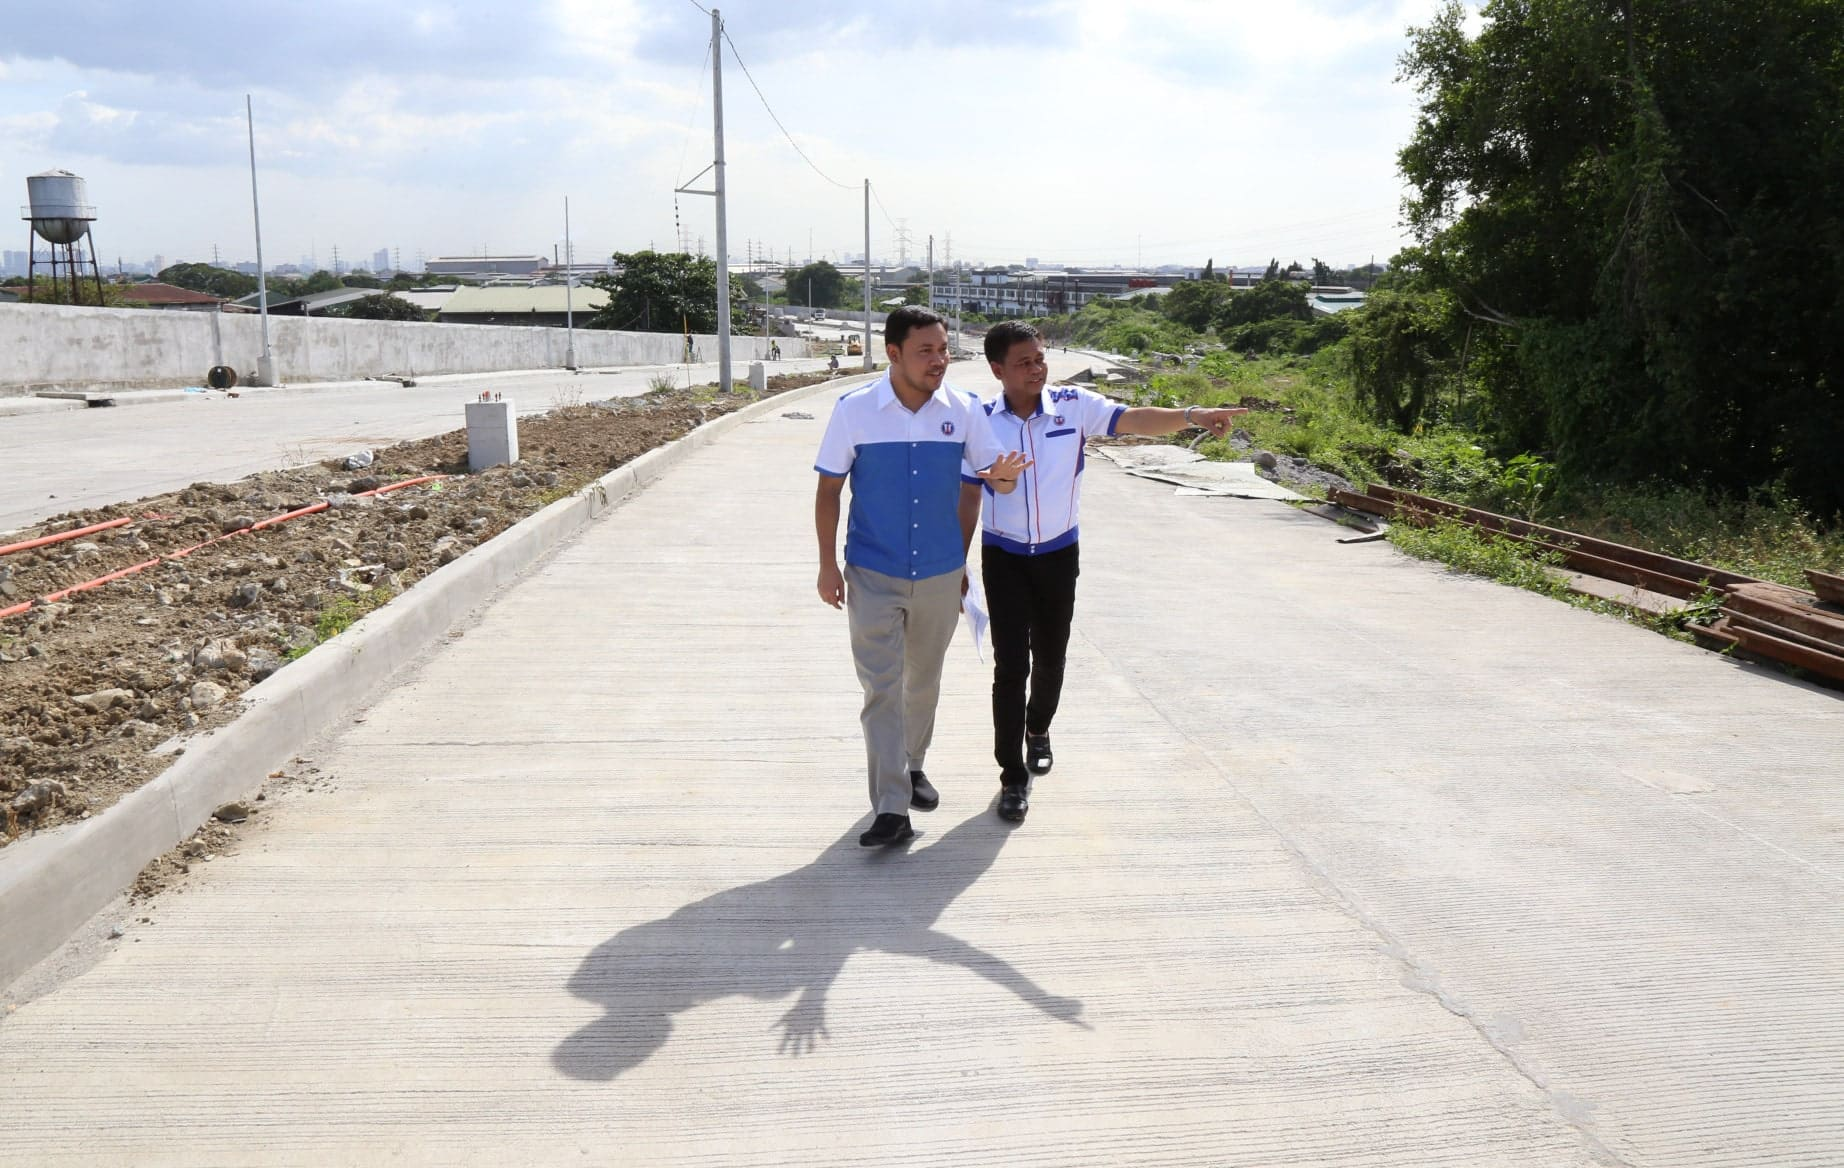 Mindanao Avenue Extension to Gen. Luis Avenue to be Completed by Q2 2019